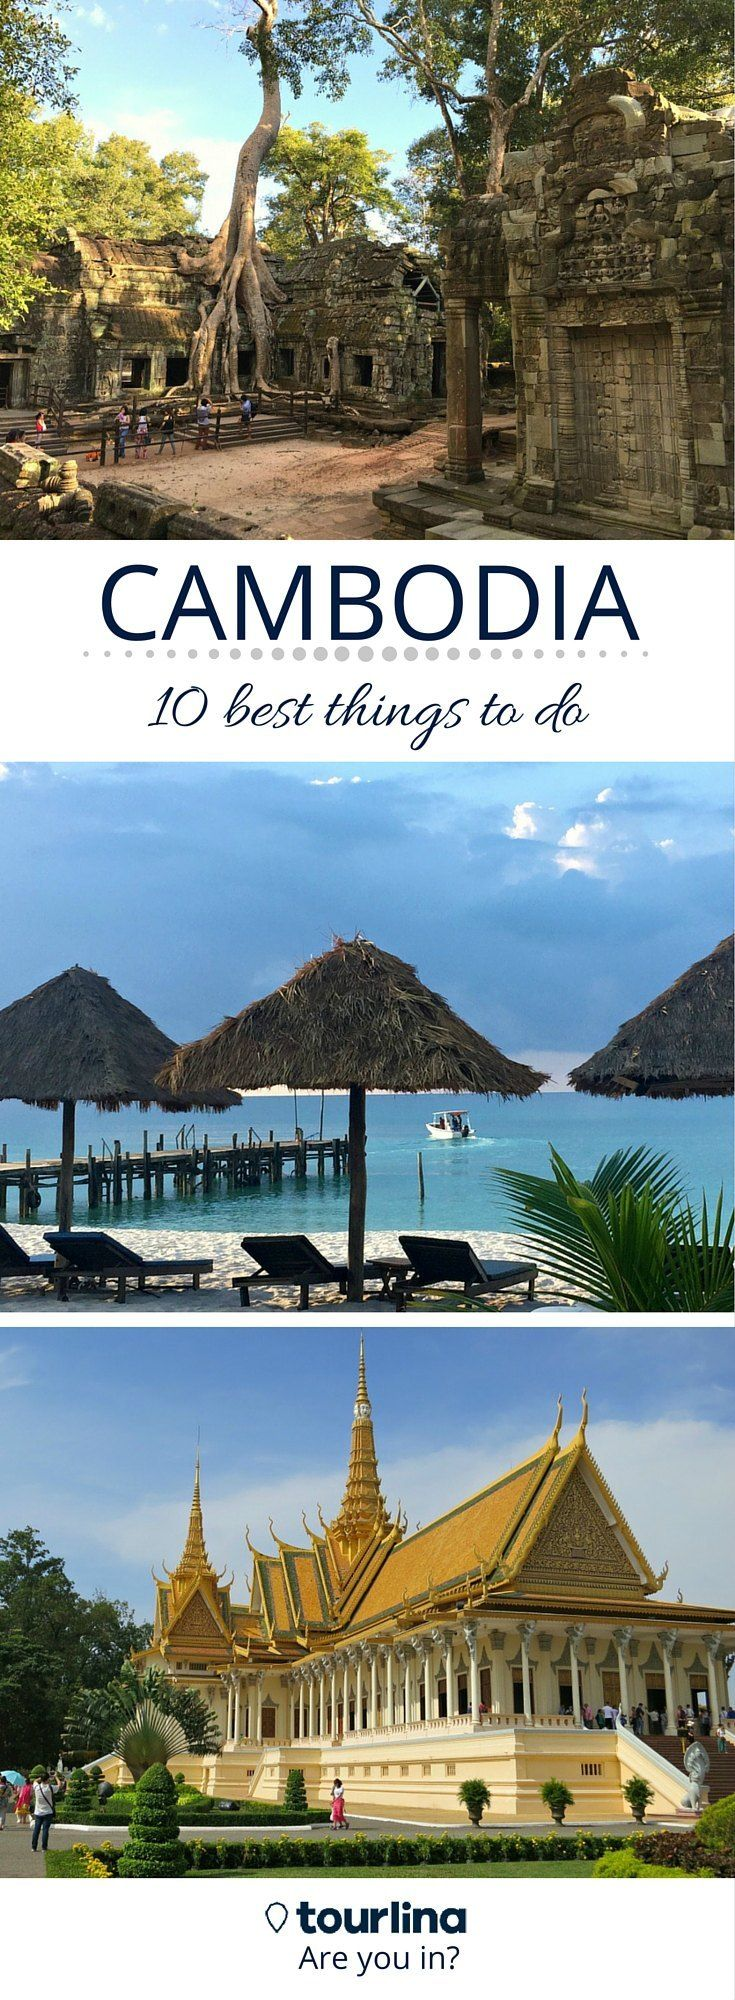 CAMBODIA  - 10 best things to do